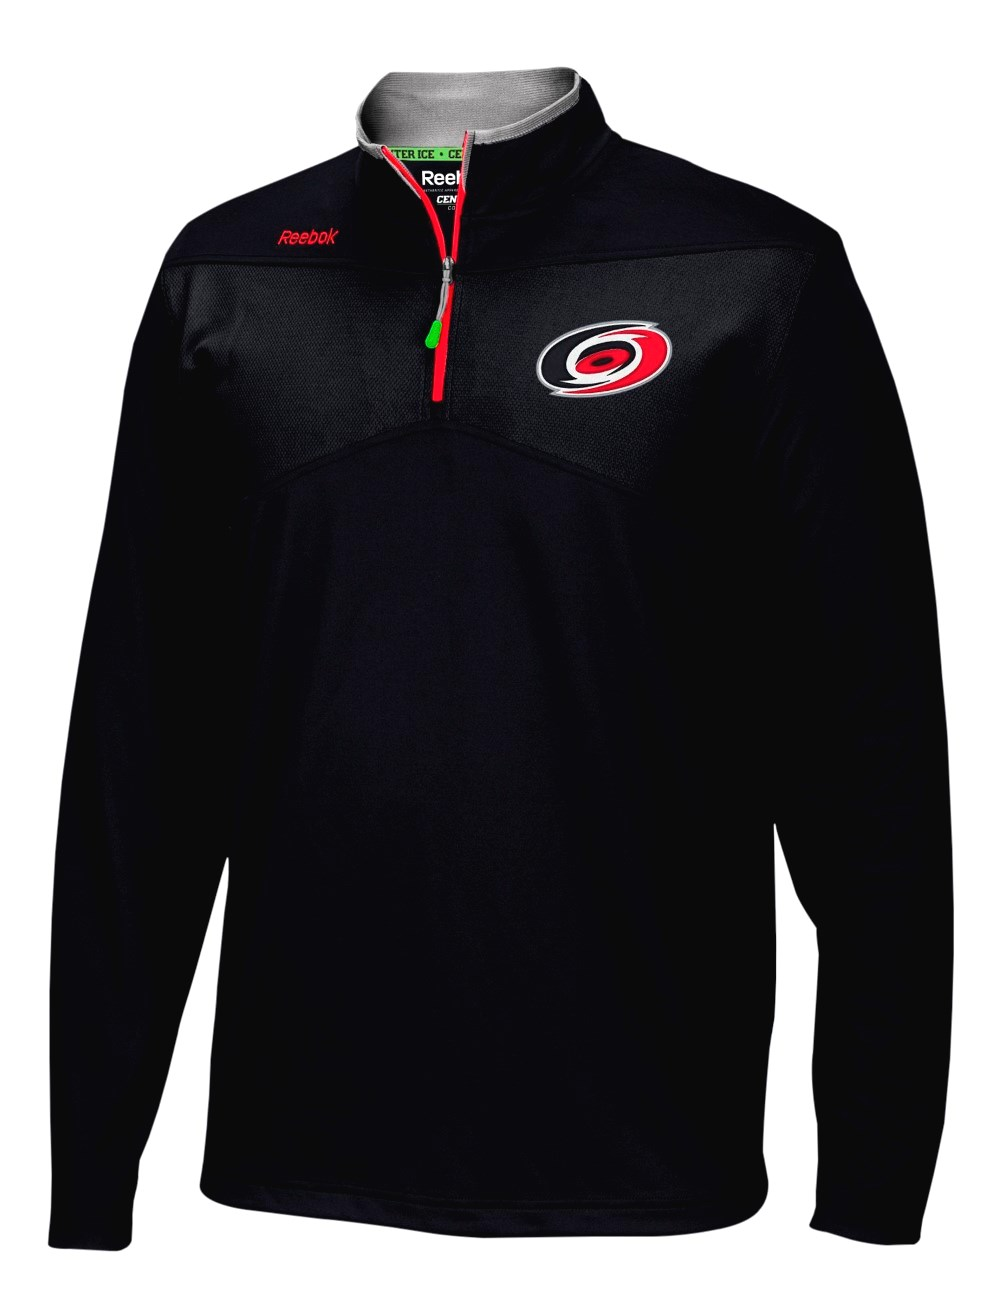 Carolina Hurricanes Reebok NHL 2016 Center Ice Speedwick 1/4 Zip Sweatshirt